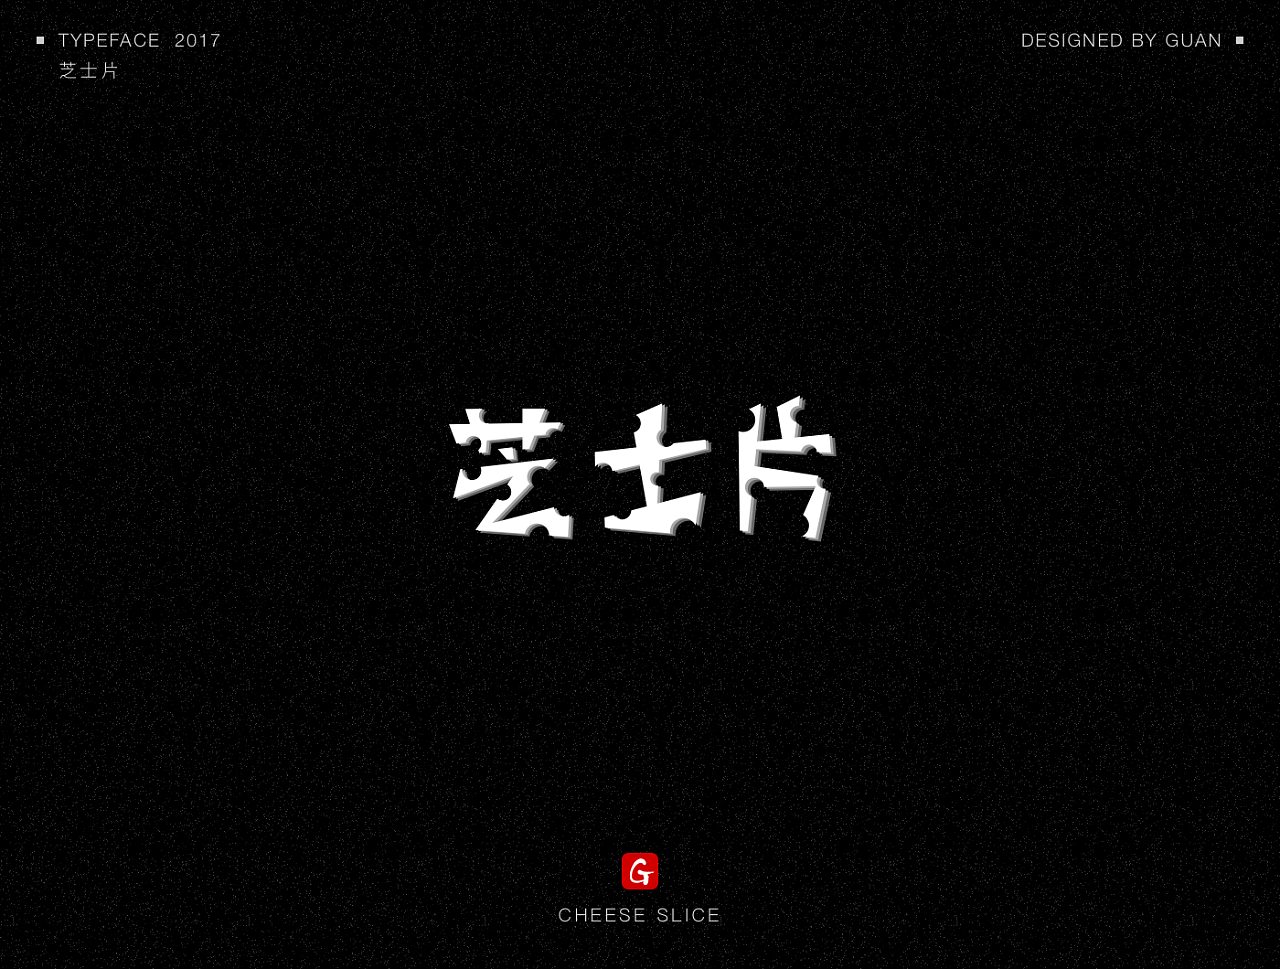 chinesefontdesign.com 2017 09 19 10 53 40 169112 20P Super fashionable Chinese font style design